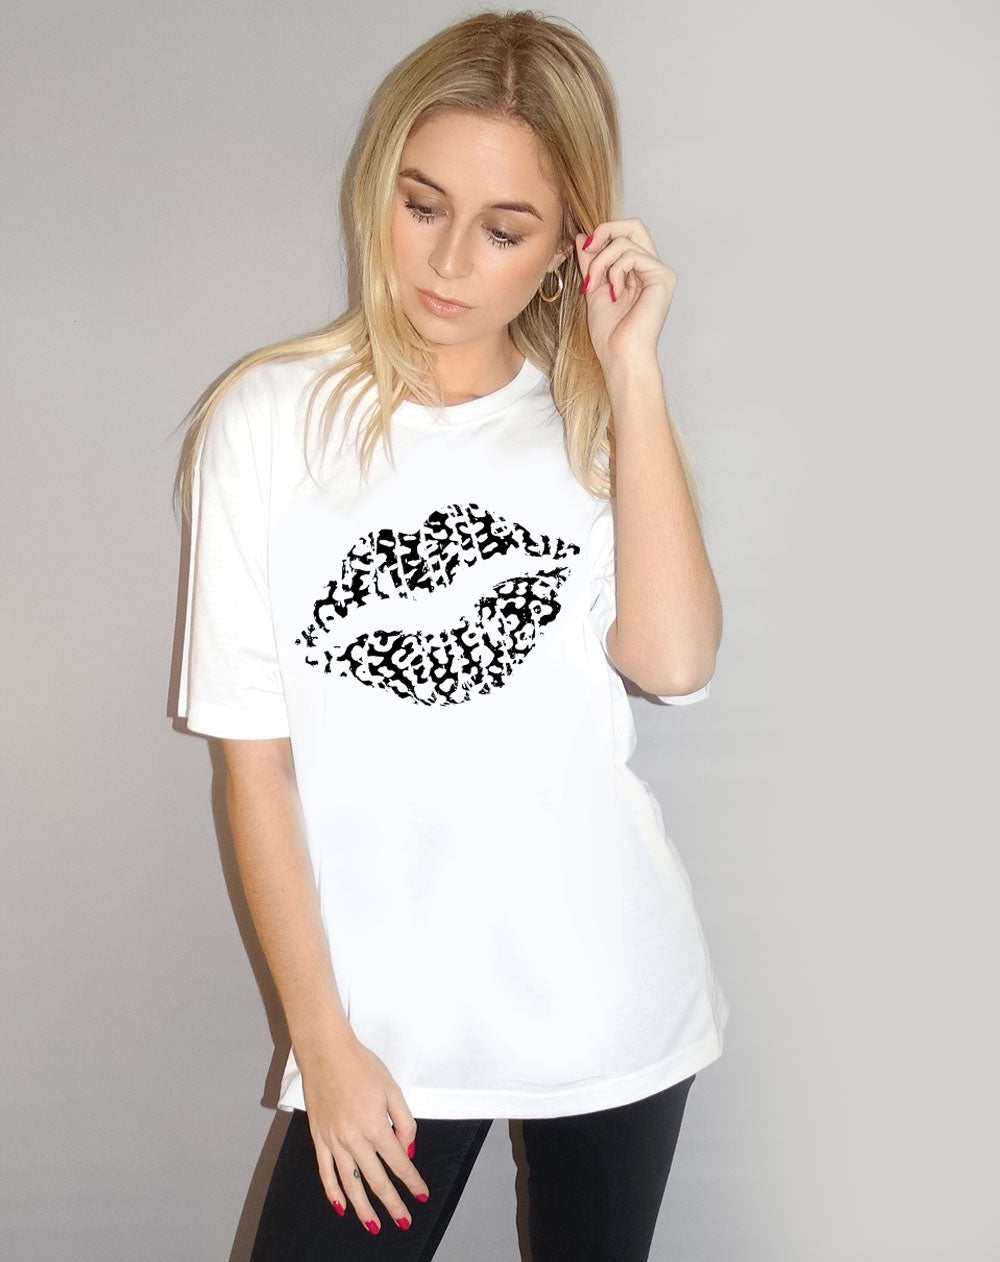 Black and white  Leopard Lip Tshirt Motif Tshirt in White